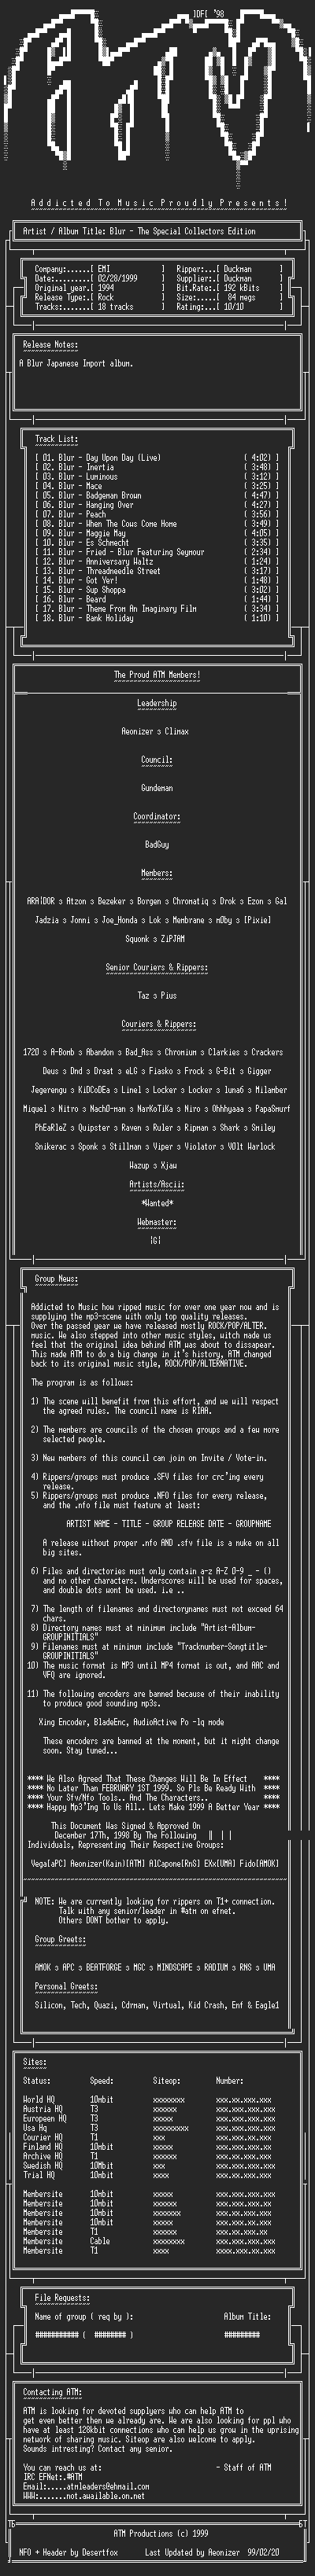 NFO file for Blur_-_The_Special_Collectors_Edition_-_1994-ATM